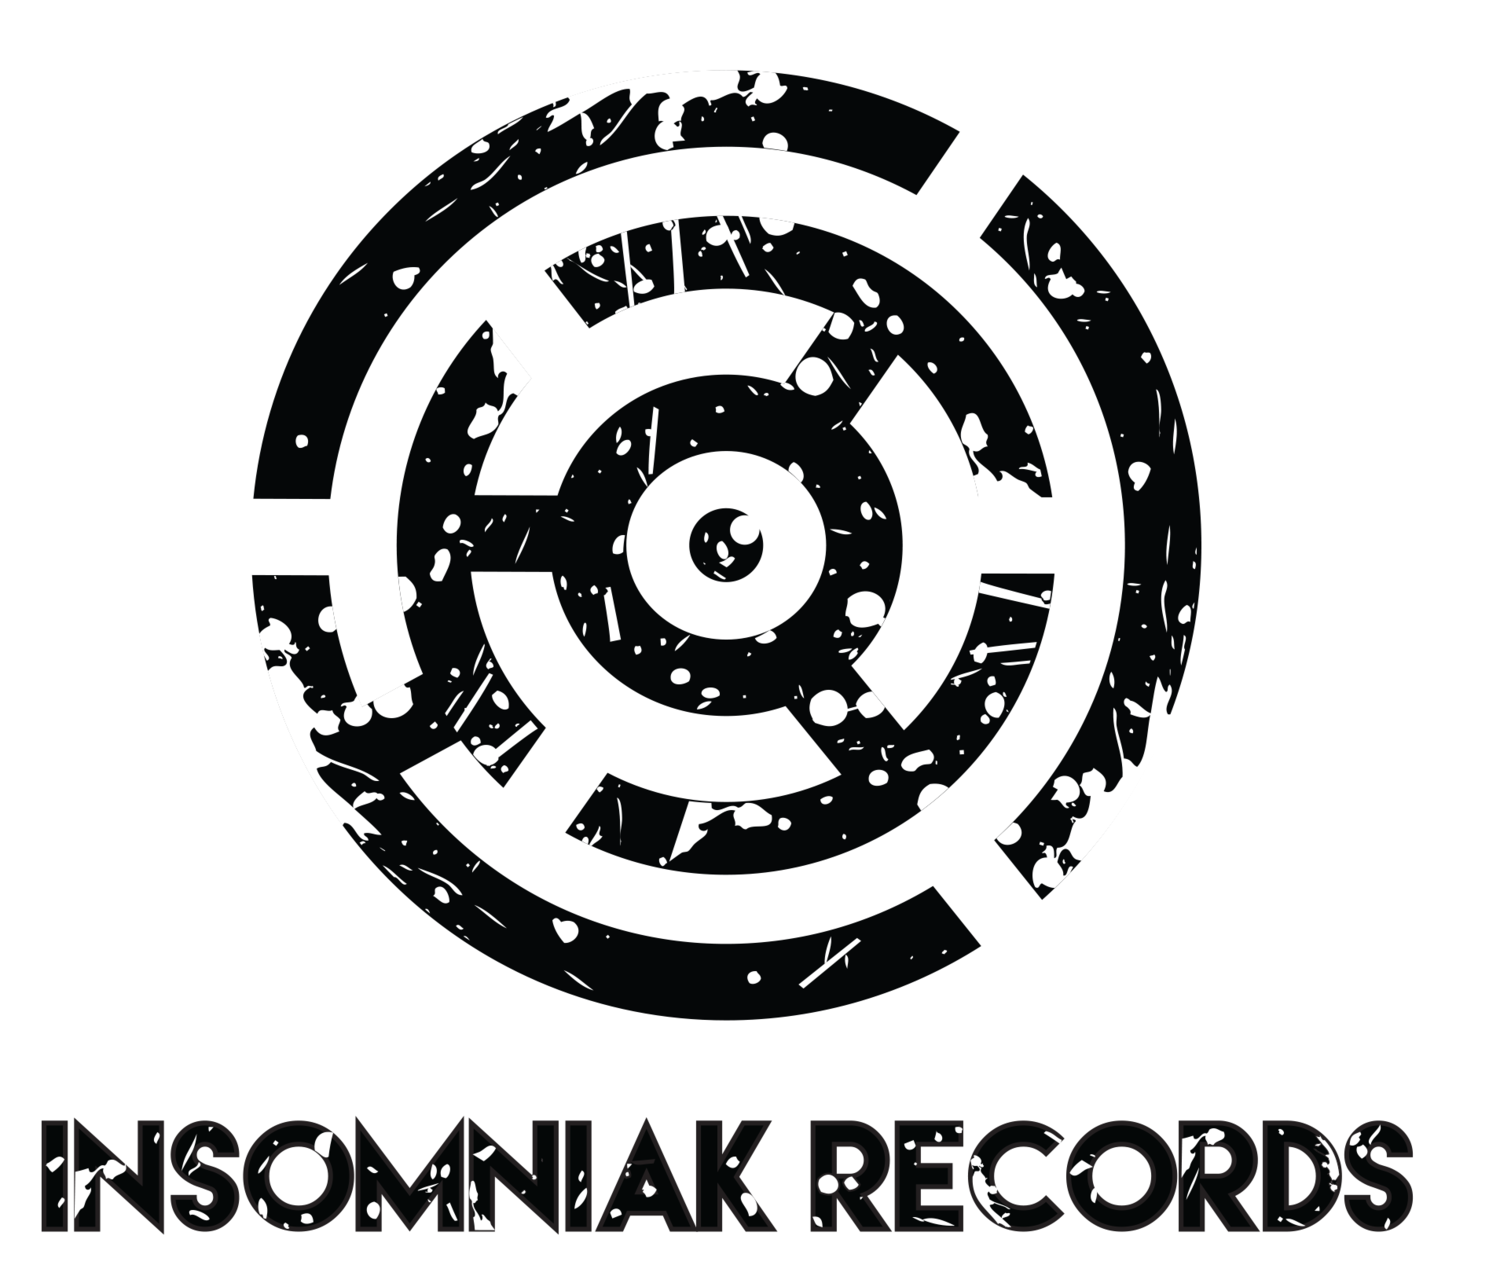 Insomniak Records